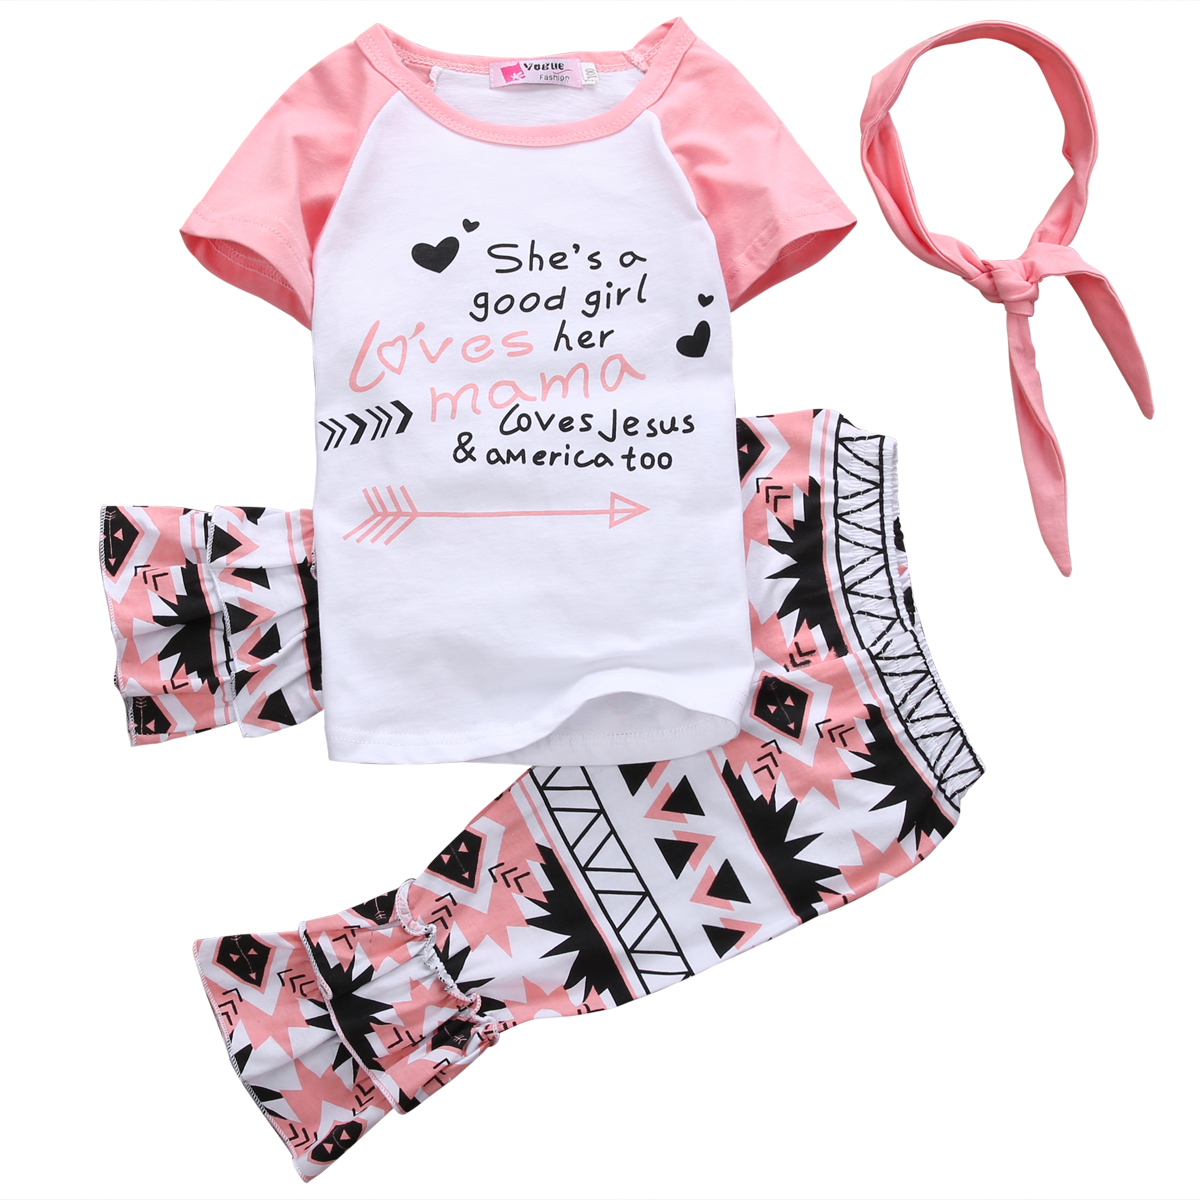 2018 Toddler Girls Kids Summer Outfits Clothes  White  Letter T-shirt Tops+Colorful  Pants+ Headband 3PCS Set  1-6T toddler kids girls clothes cotton long sleeves t shirt top pants headband christmas snowman ruffle polka dot outfits